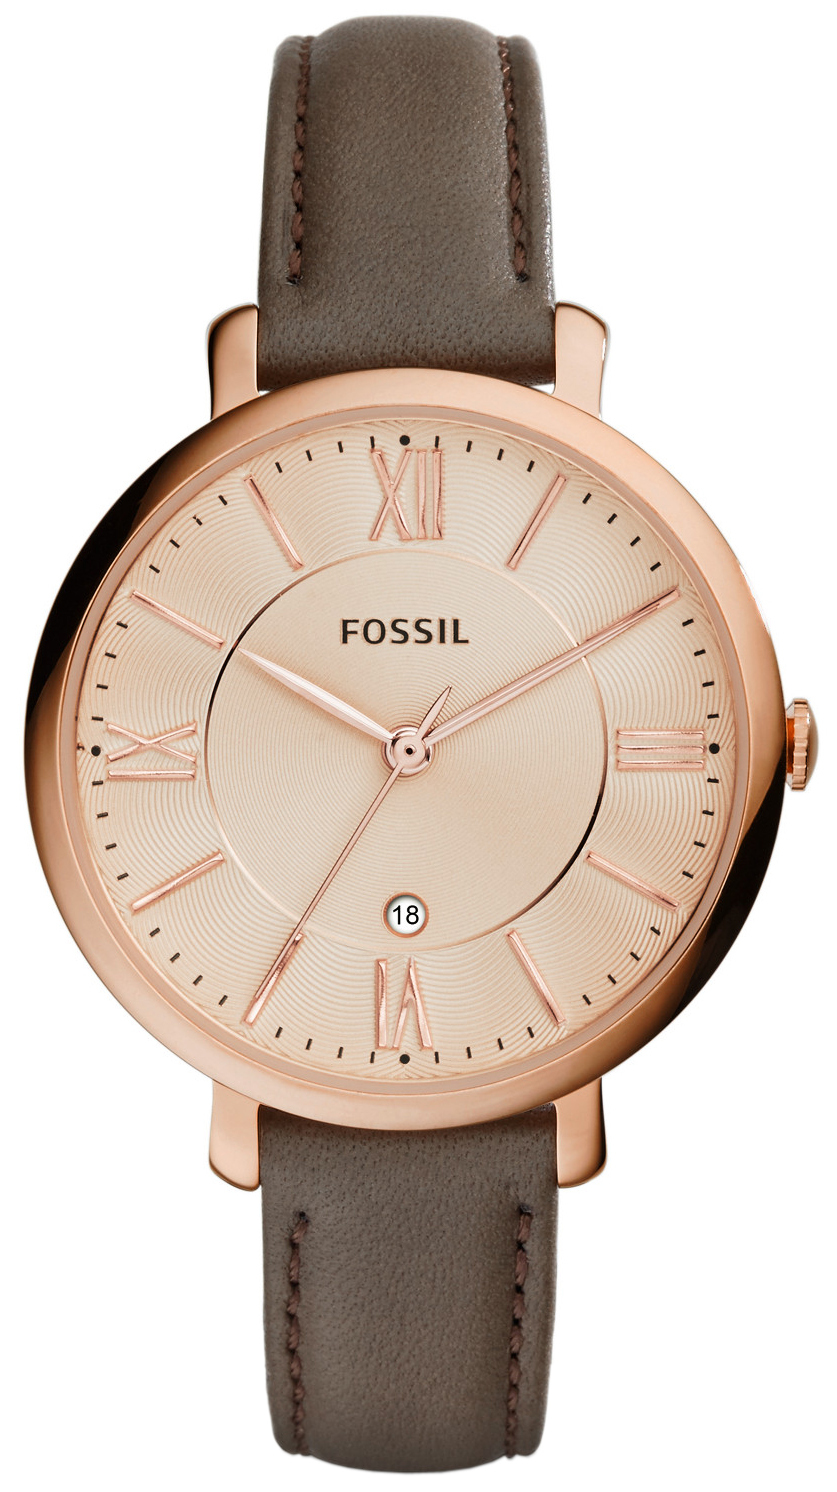 Fossil Dress Dameklokke ES3707 Rosegullfarget/Lær Ø36 mm - Fossil